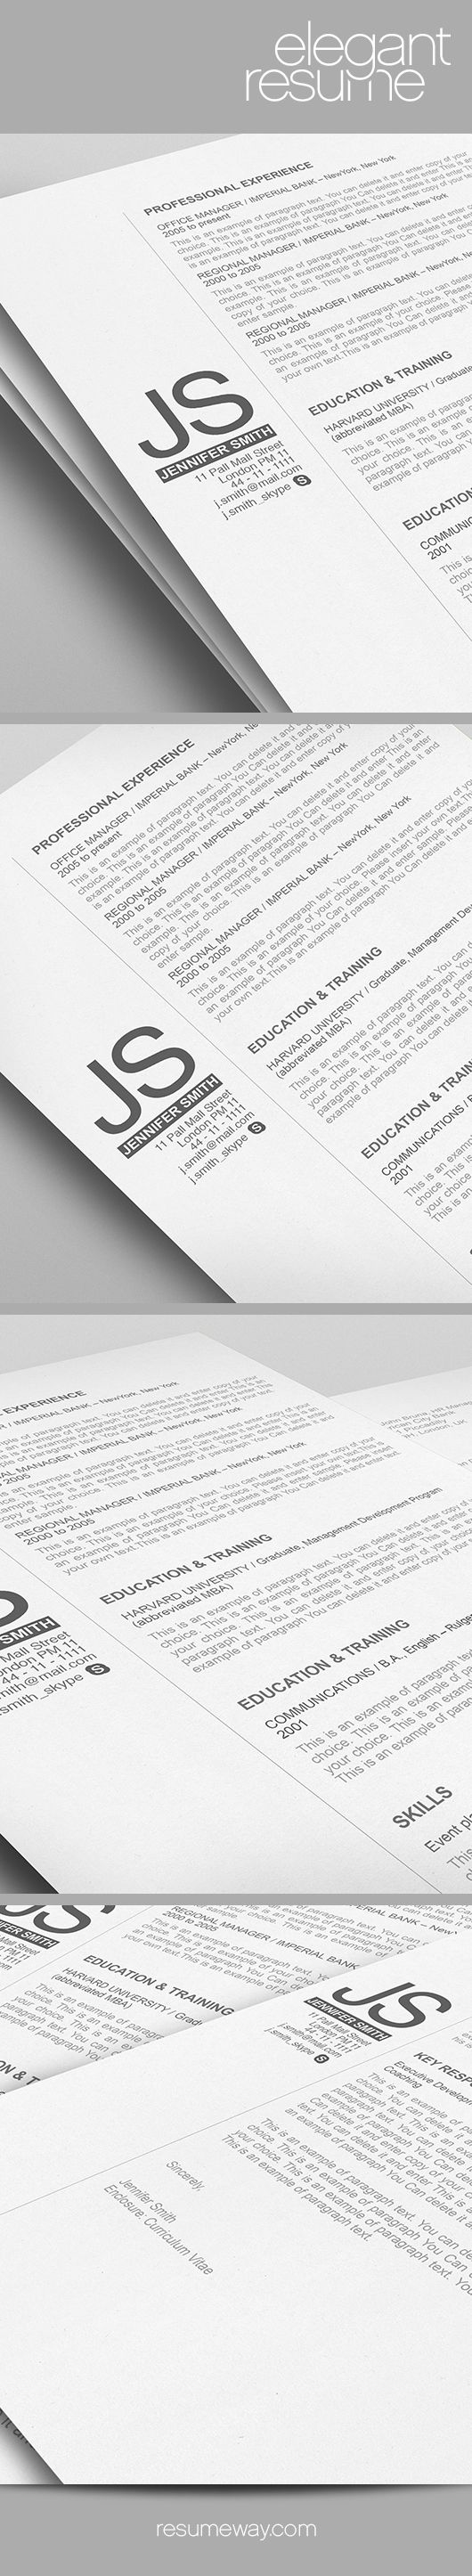 elegant resume template 110540 premium line of resume cover letter templates easy